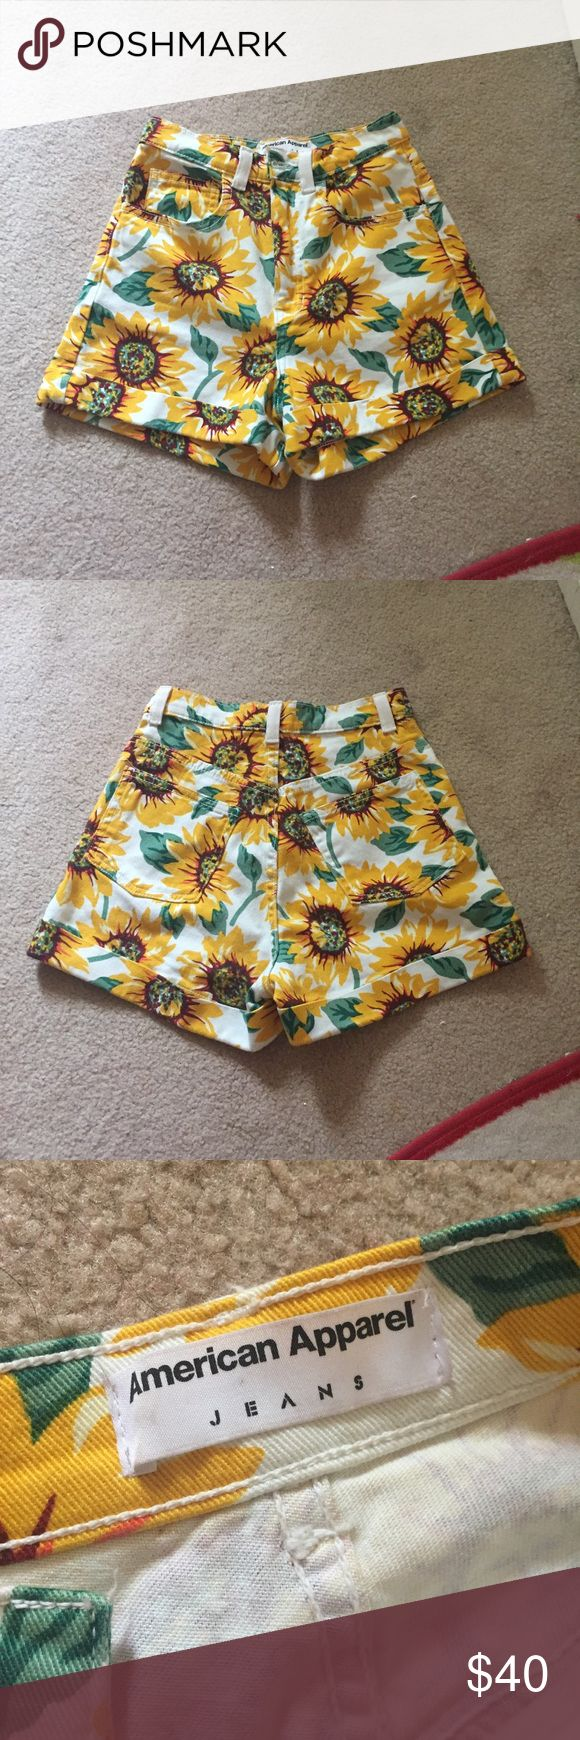 American apparel sunflower shorts 🌻 Price is firm. Never even worn by me yet, in perfect condition! 100% authentic, high waisted sunflower shorts. Only reason I'm selling is b/c I need money, no trades! Absolutely love these shorts! American Apparel Shorts